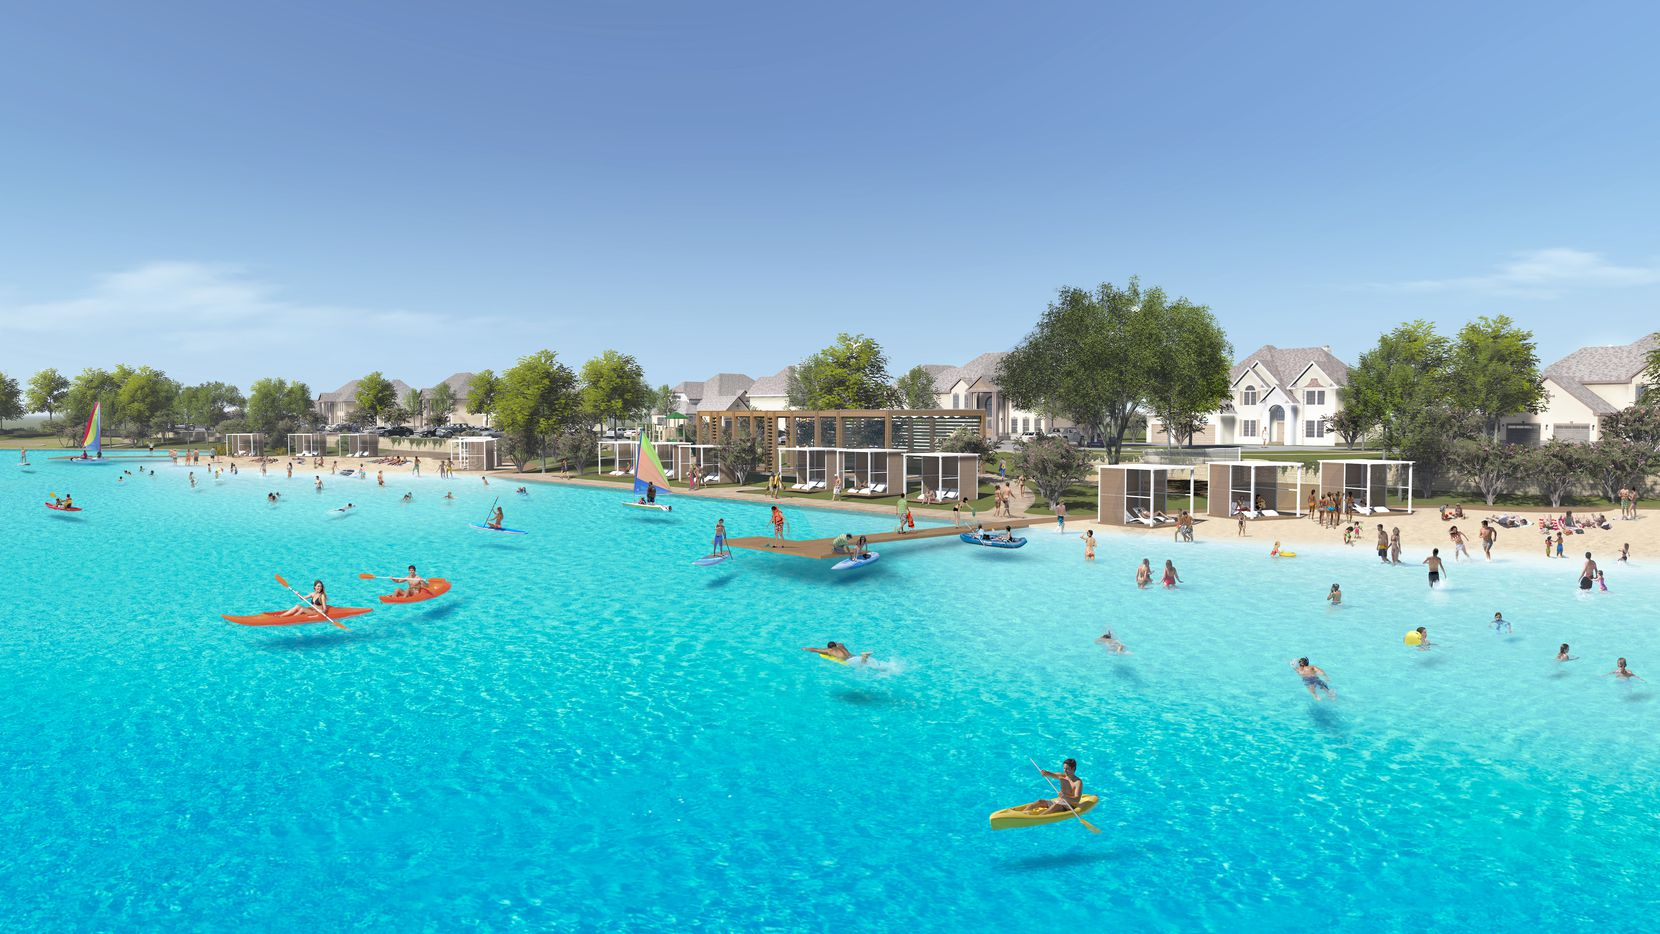 The Crystal Lagoon in Prosper's Windsong Ranch community will open next spring.